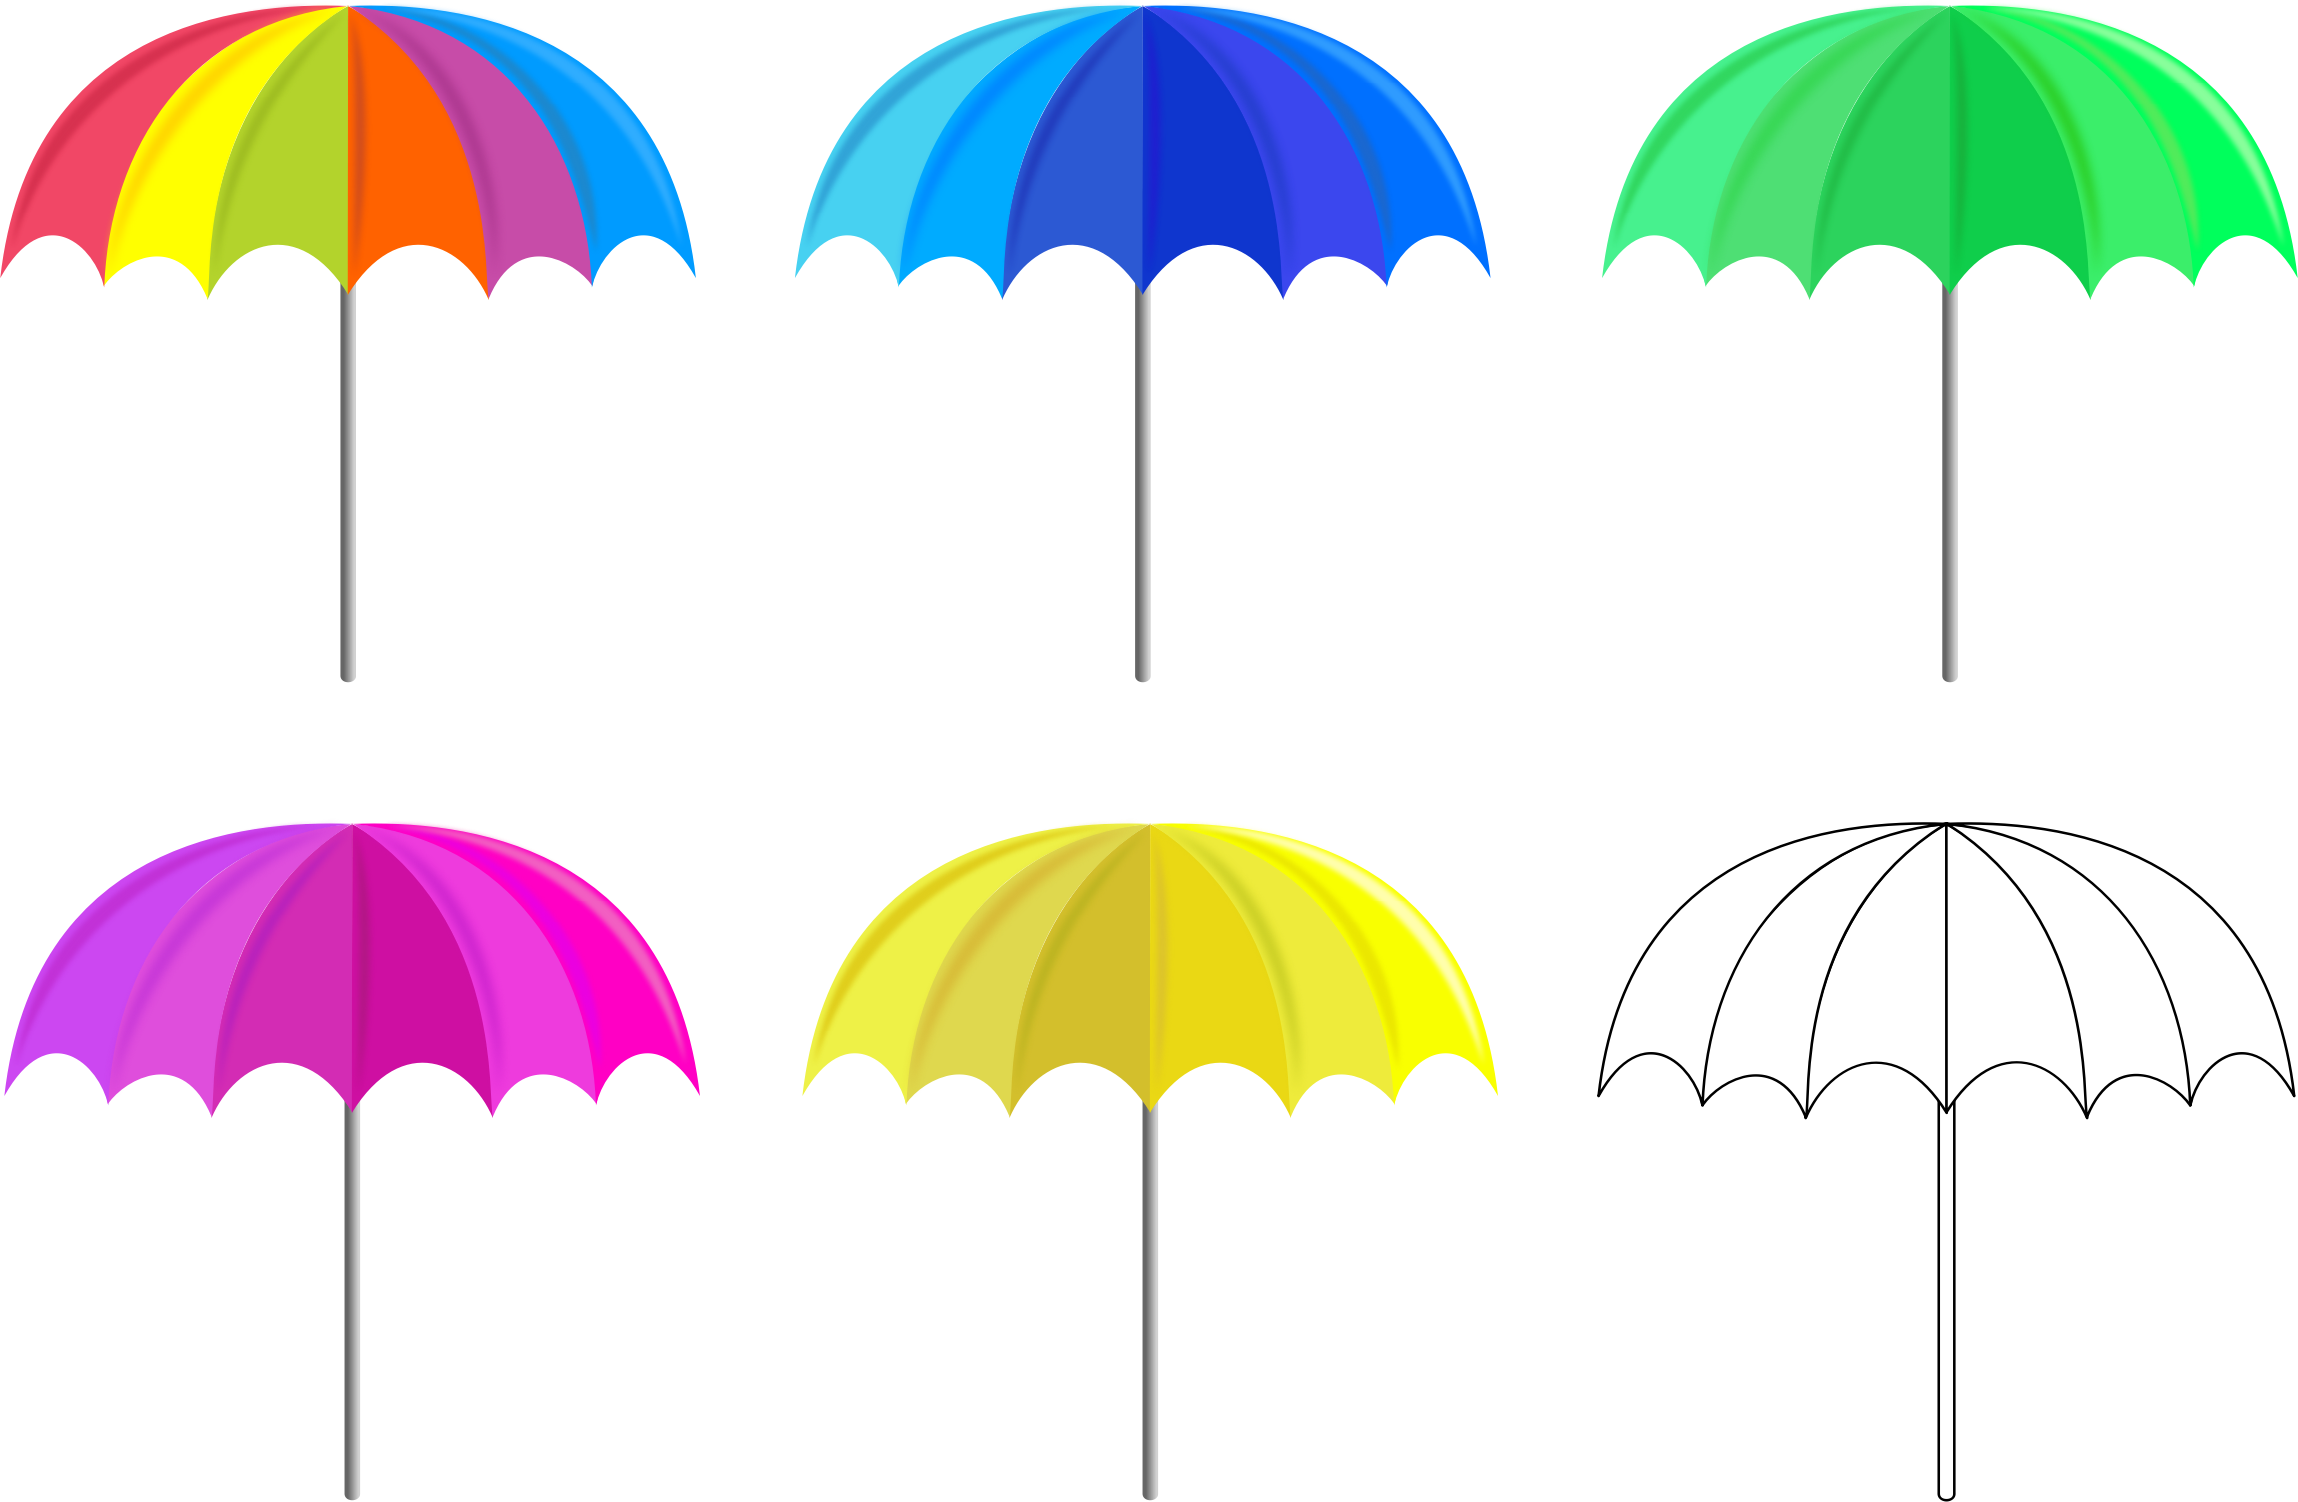 Multicolored Umbrellas by GDJ